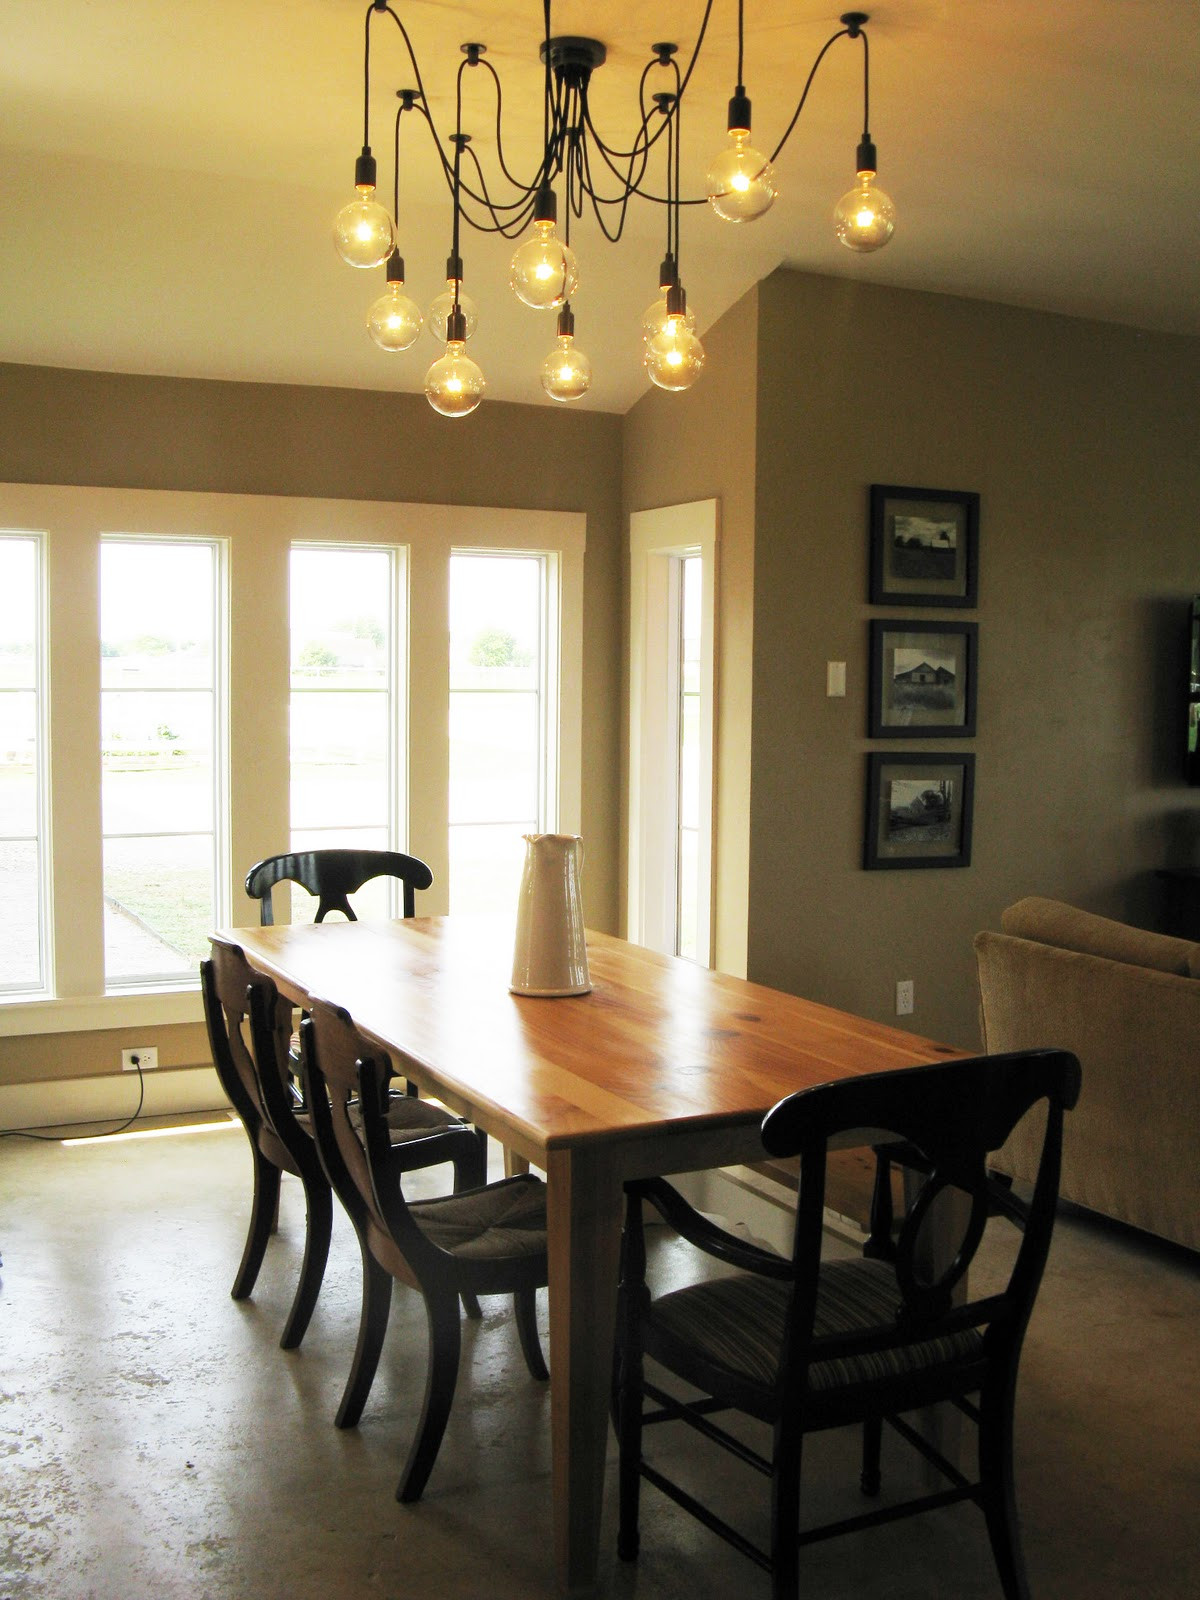 Best ideas about Farmhouse Dining Room Lighting . Save or Pin Farmhouse Now.